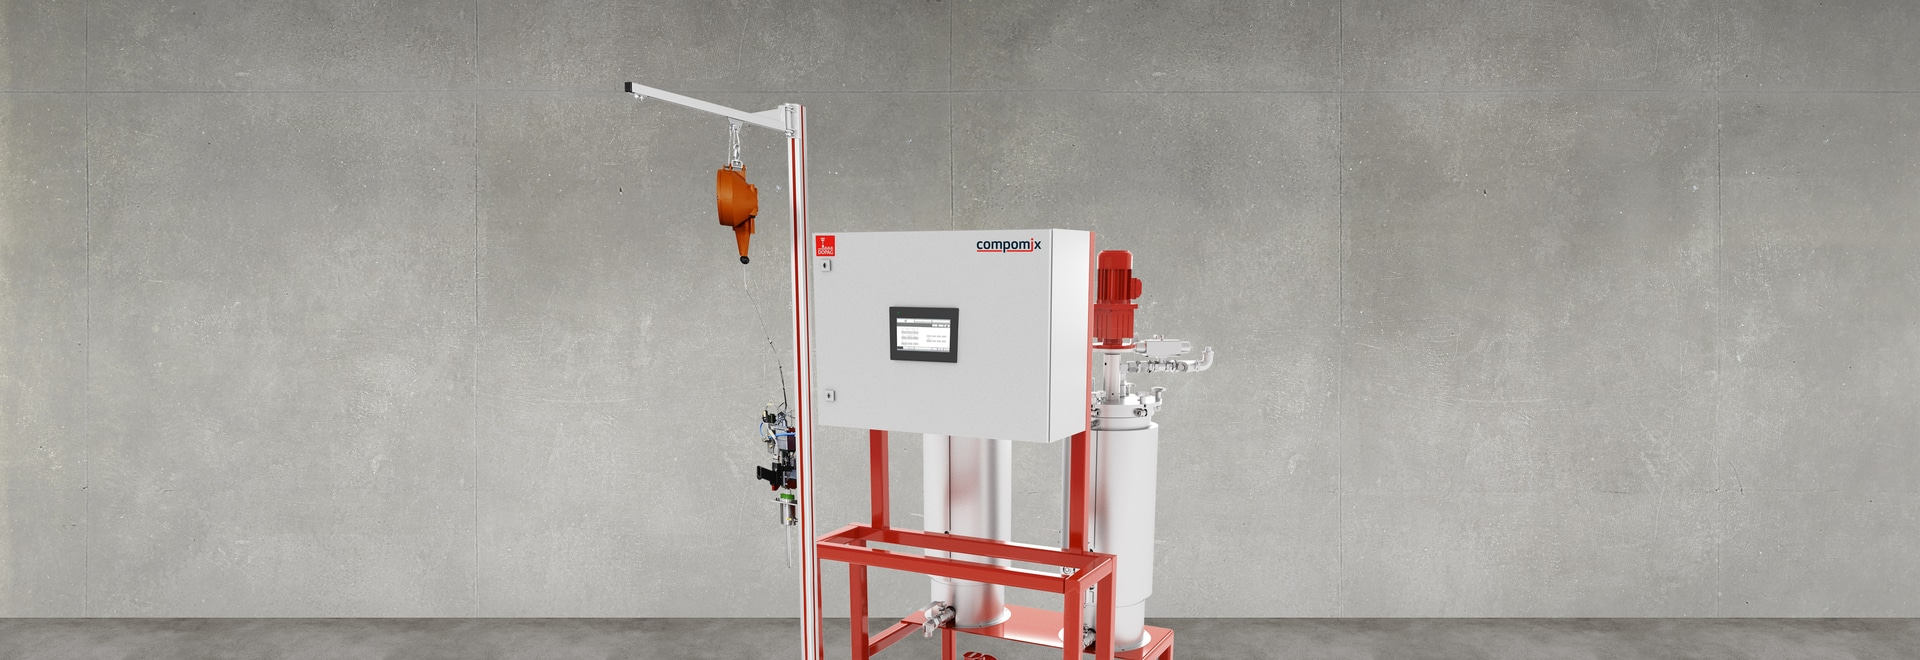 Dosing system compomix FI